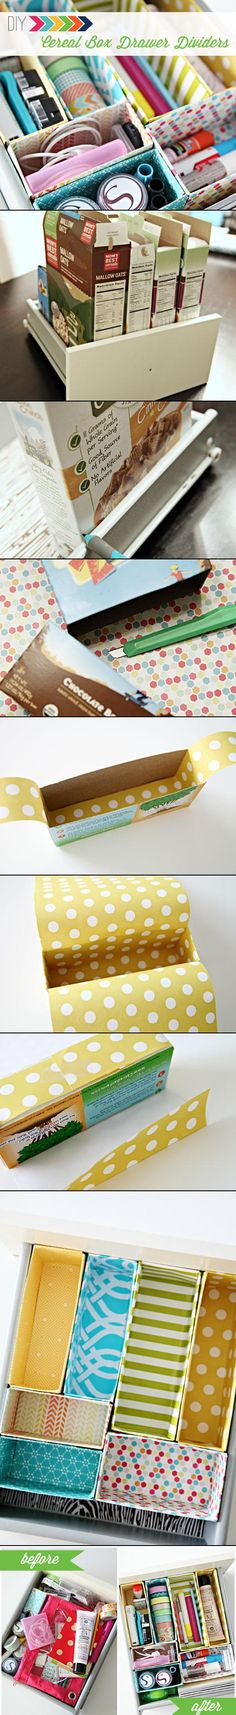 DIY Cereal Box Drawer Dividers, by I Heart Organizing.